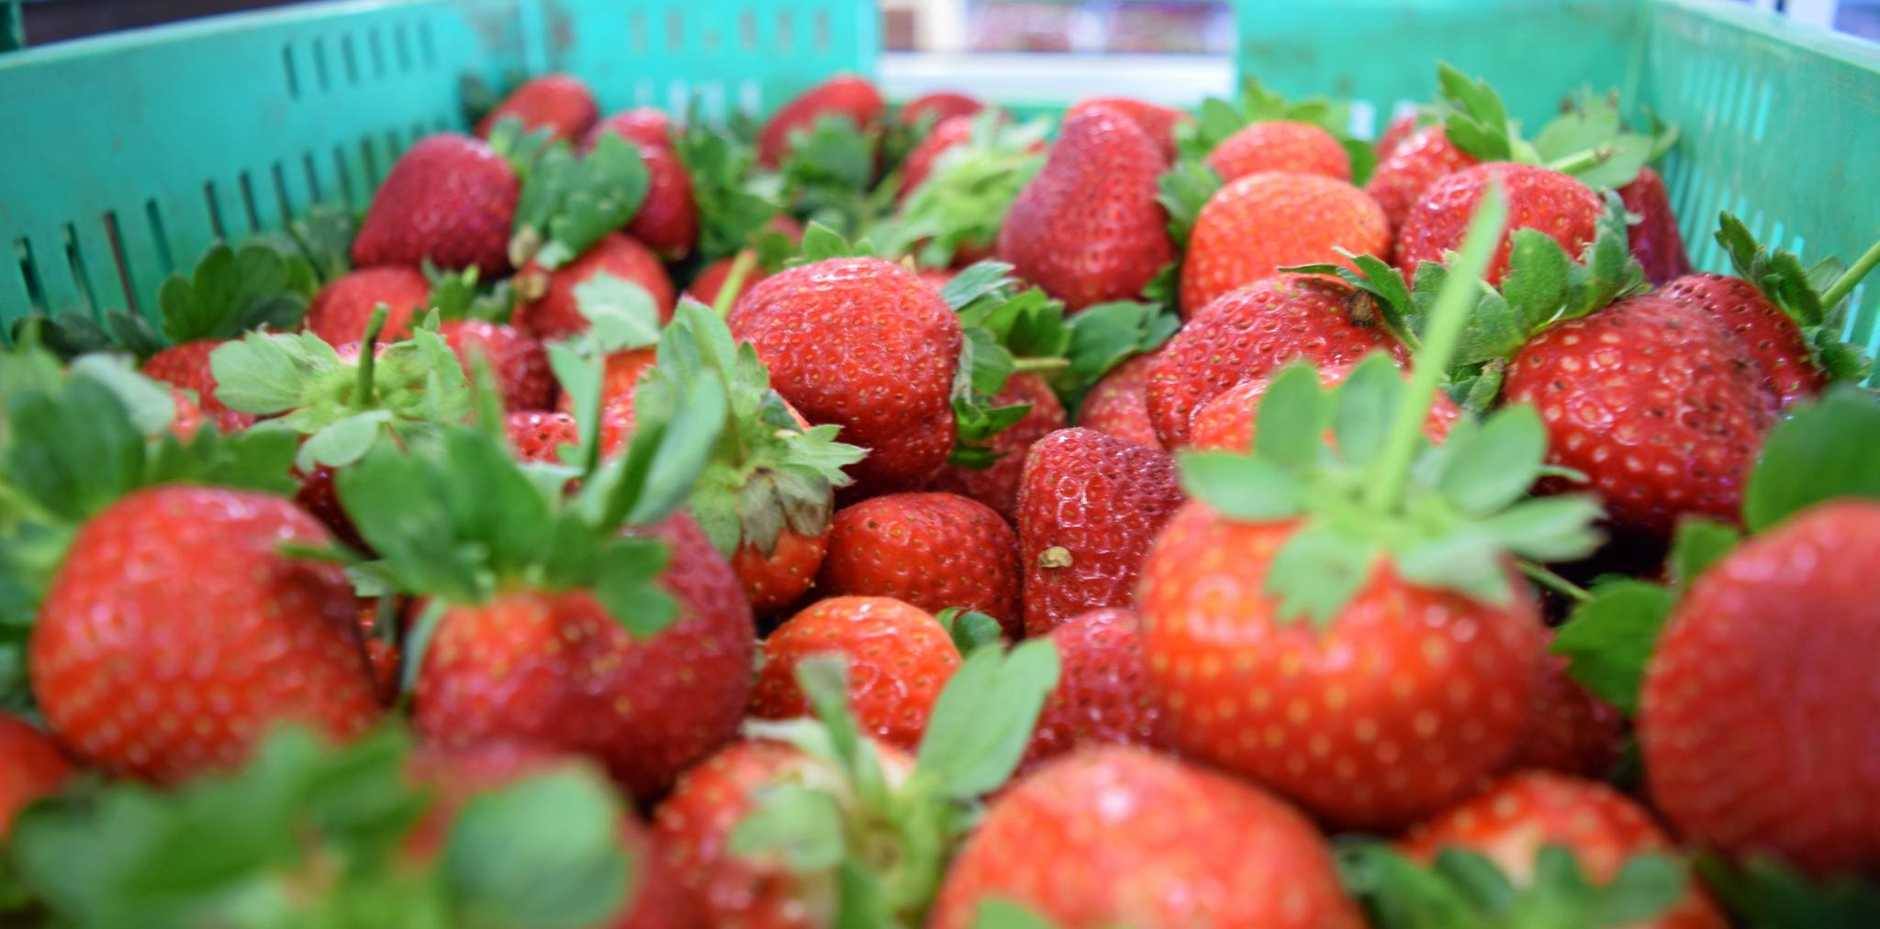 HARVEST TIME: Freshly picked strawberries at the SSS Strawberries packing shed.